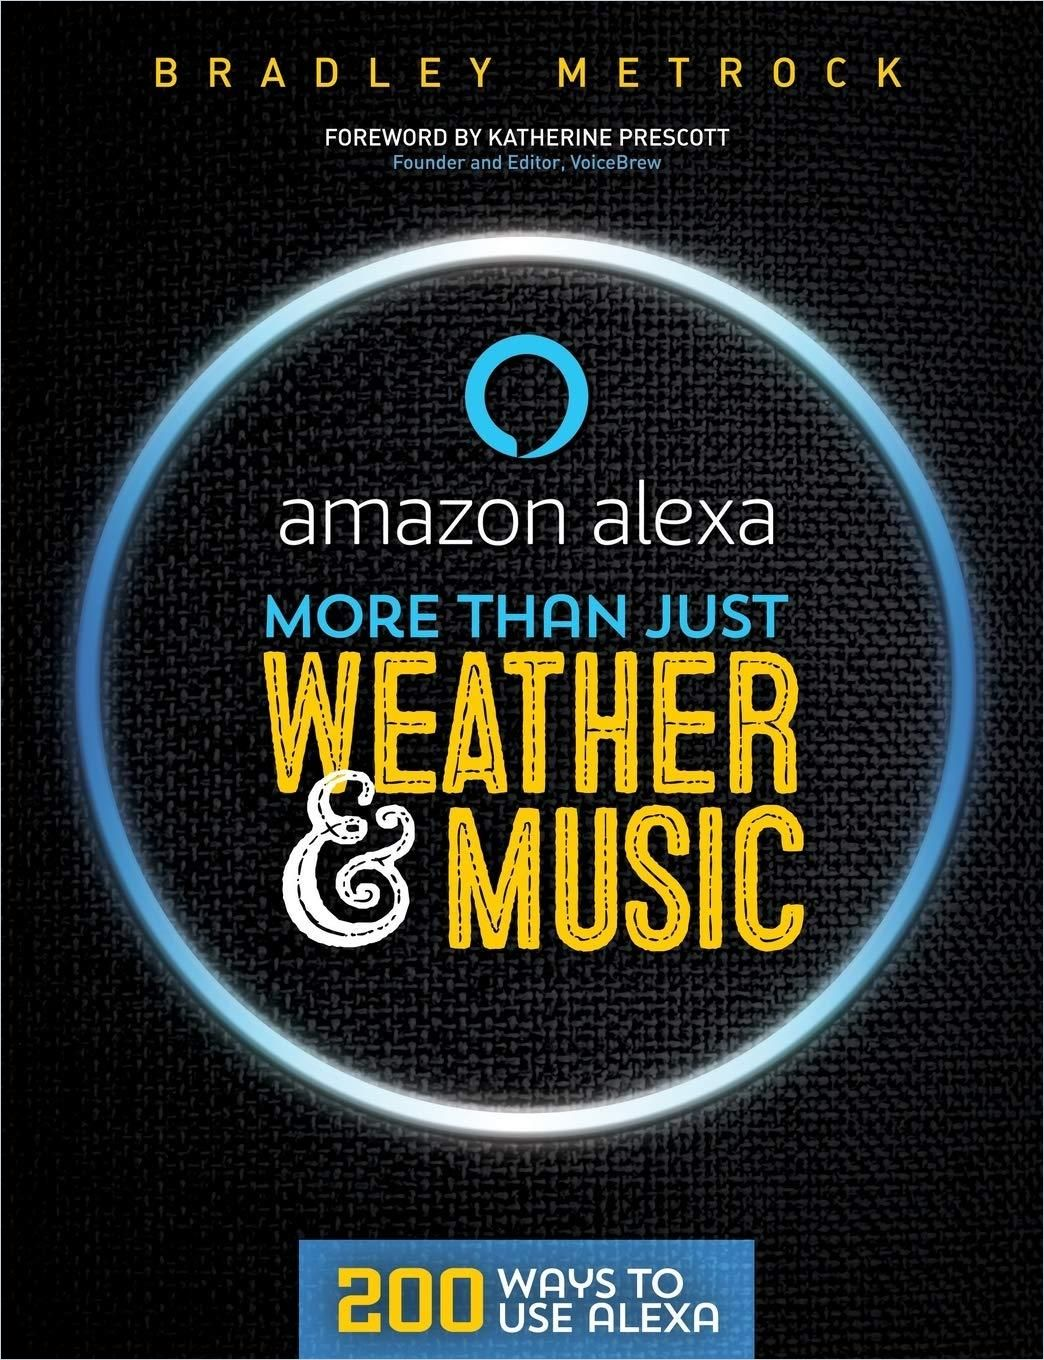 Image of: More Than Just Weather and Music